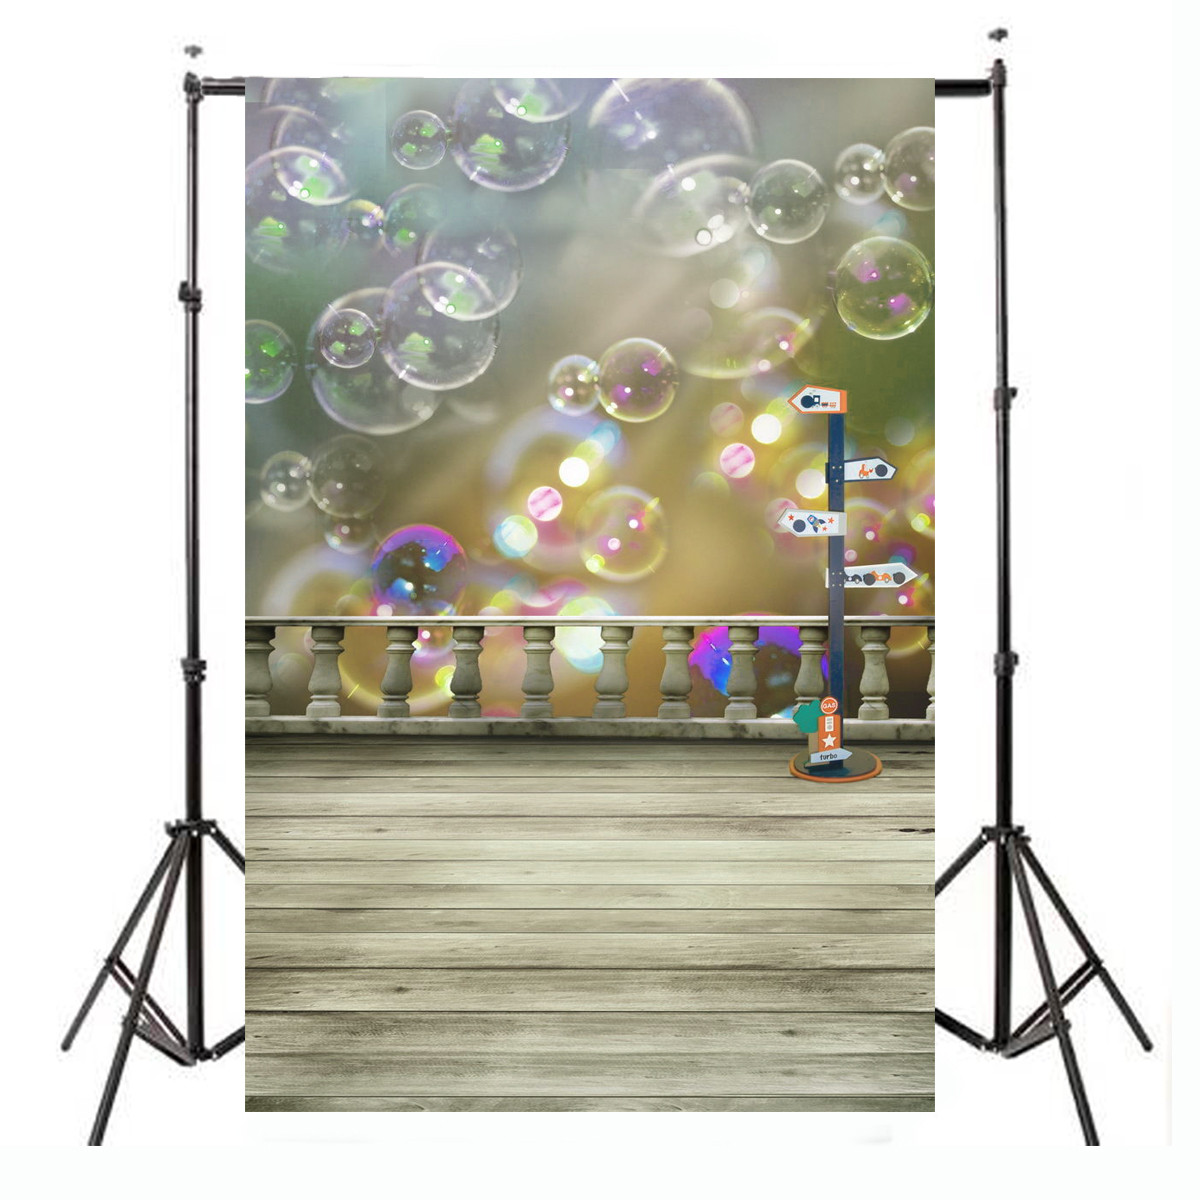 3x5Ft Cloth Colorful Cute Bubbles Floor Studio Backdrop Photography Prop Background